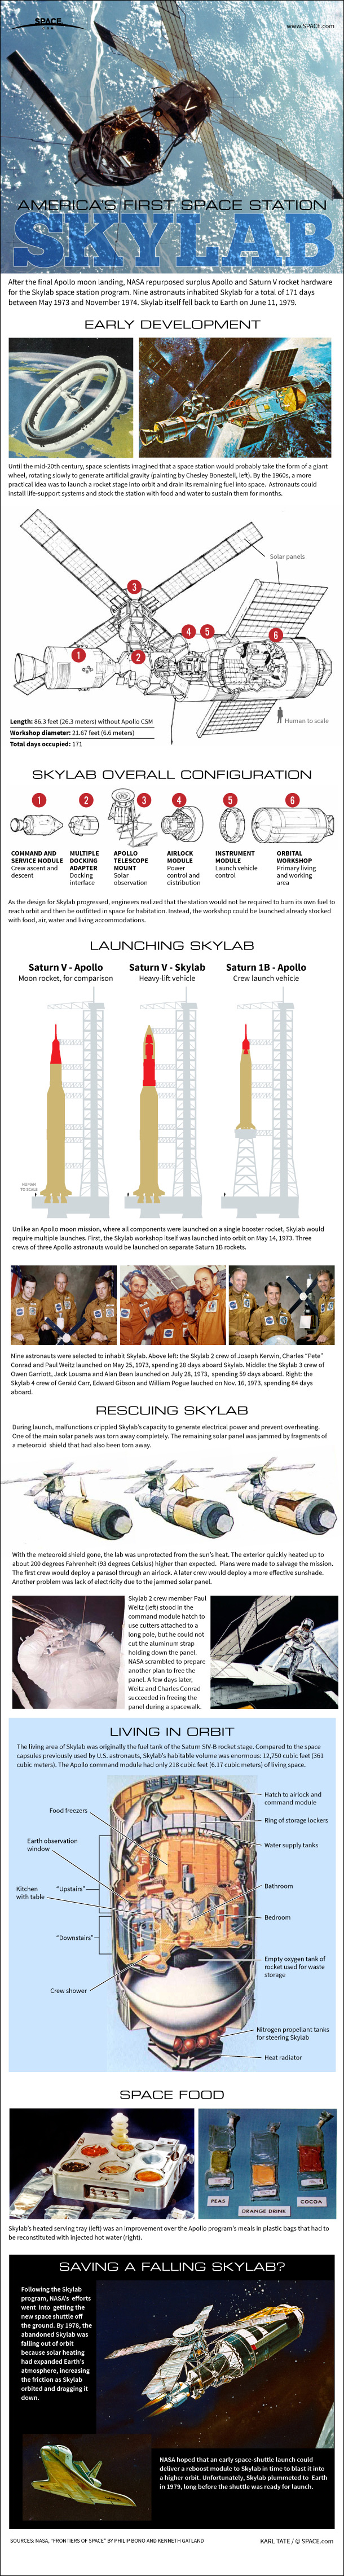 Skylab: How NASA's First Space Station Worked (Infographic)